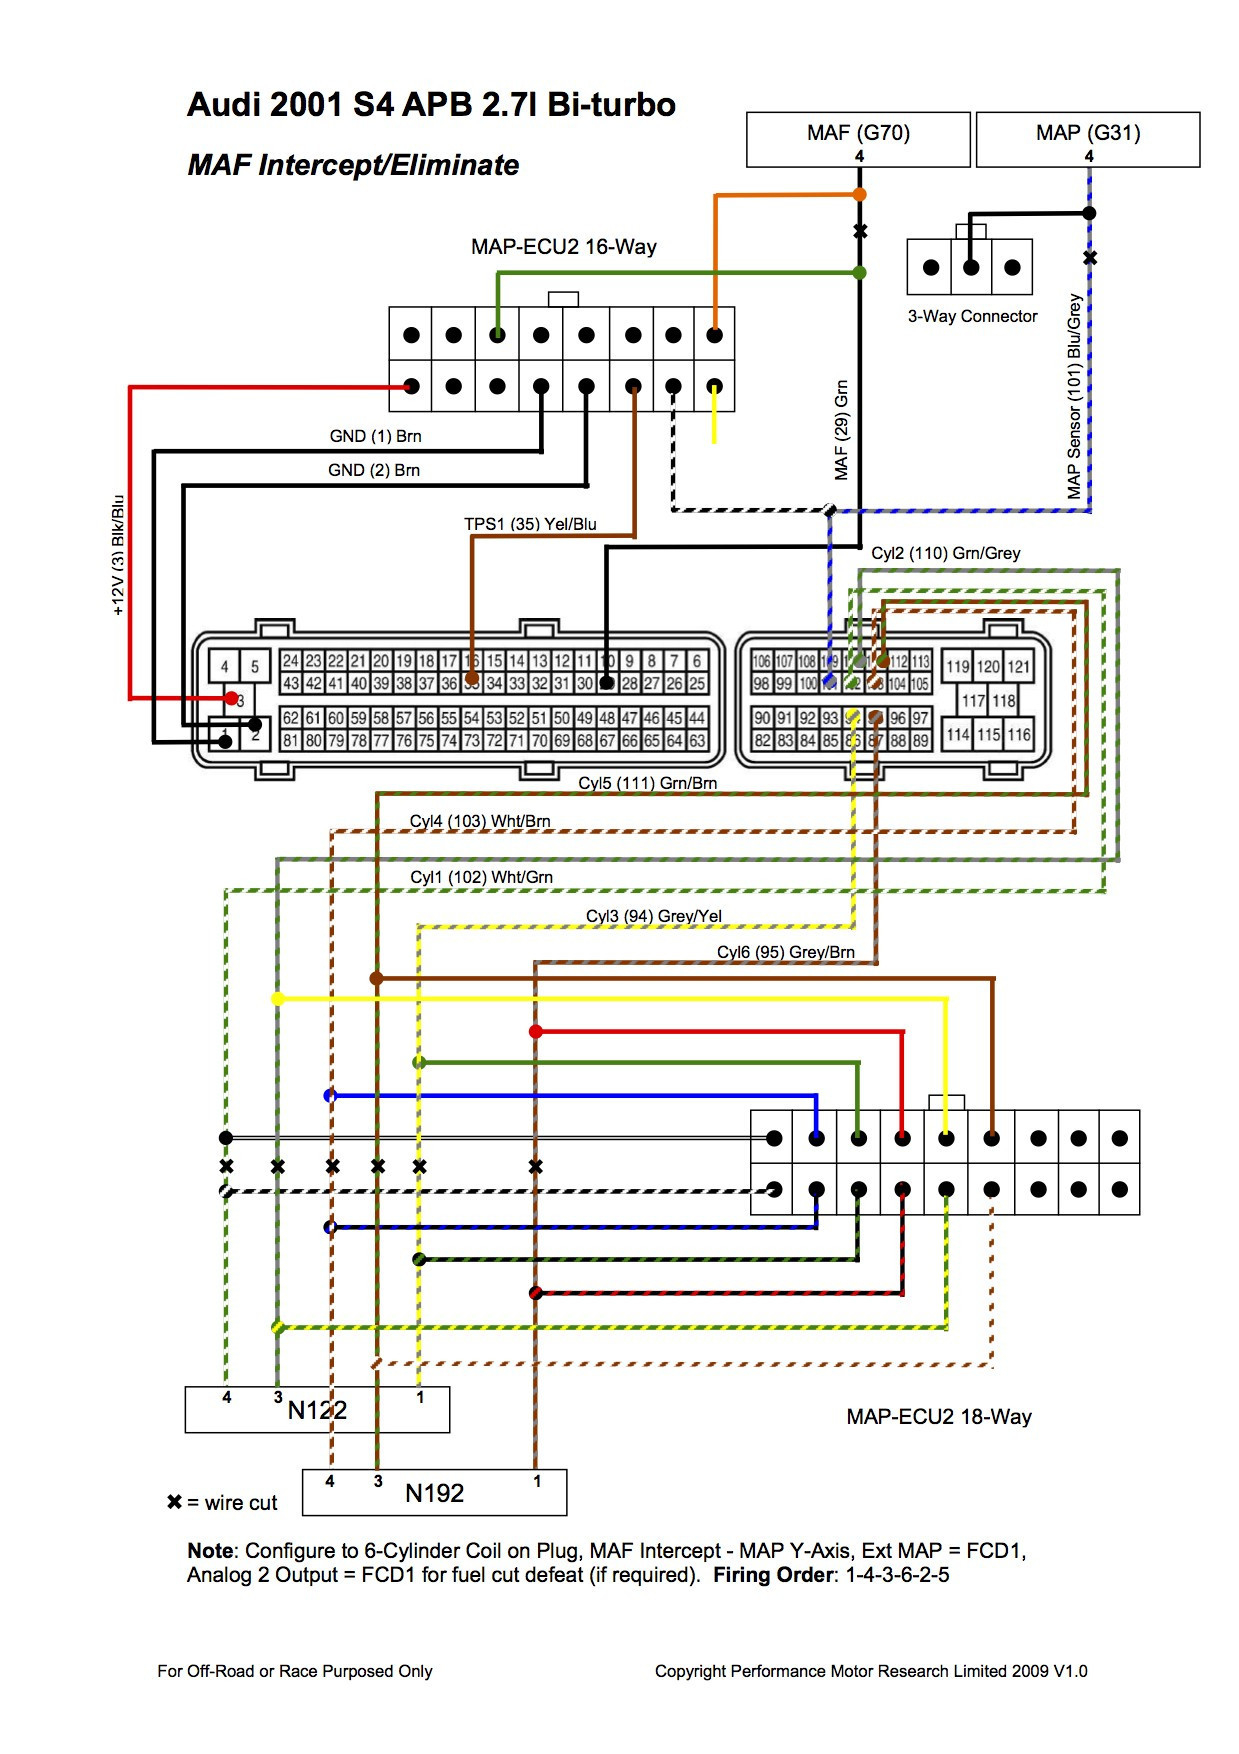 Diagram 2013 Accord Audio Wiring Diagram Full Version Hd Quality Wiring Diagram Diagramedyed Informazionihotel It